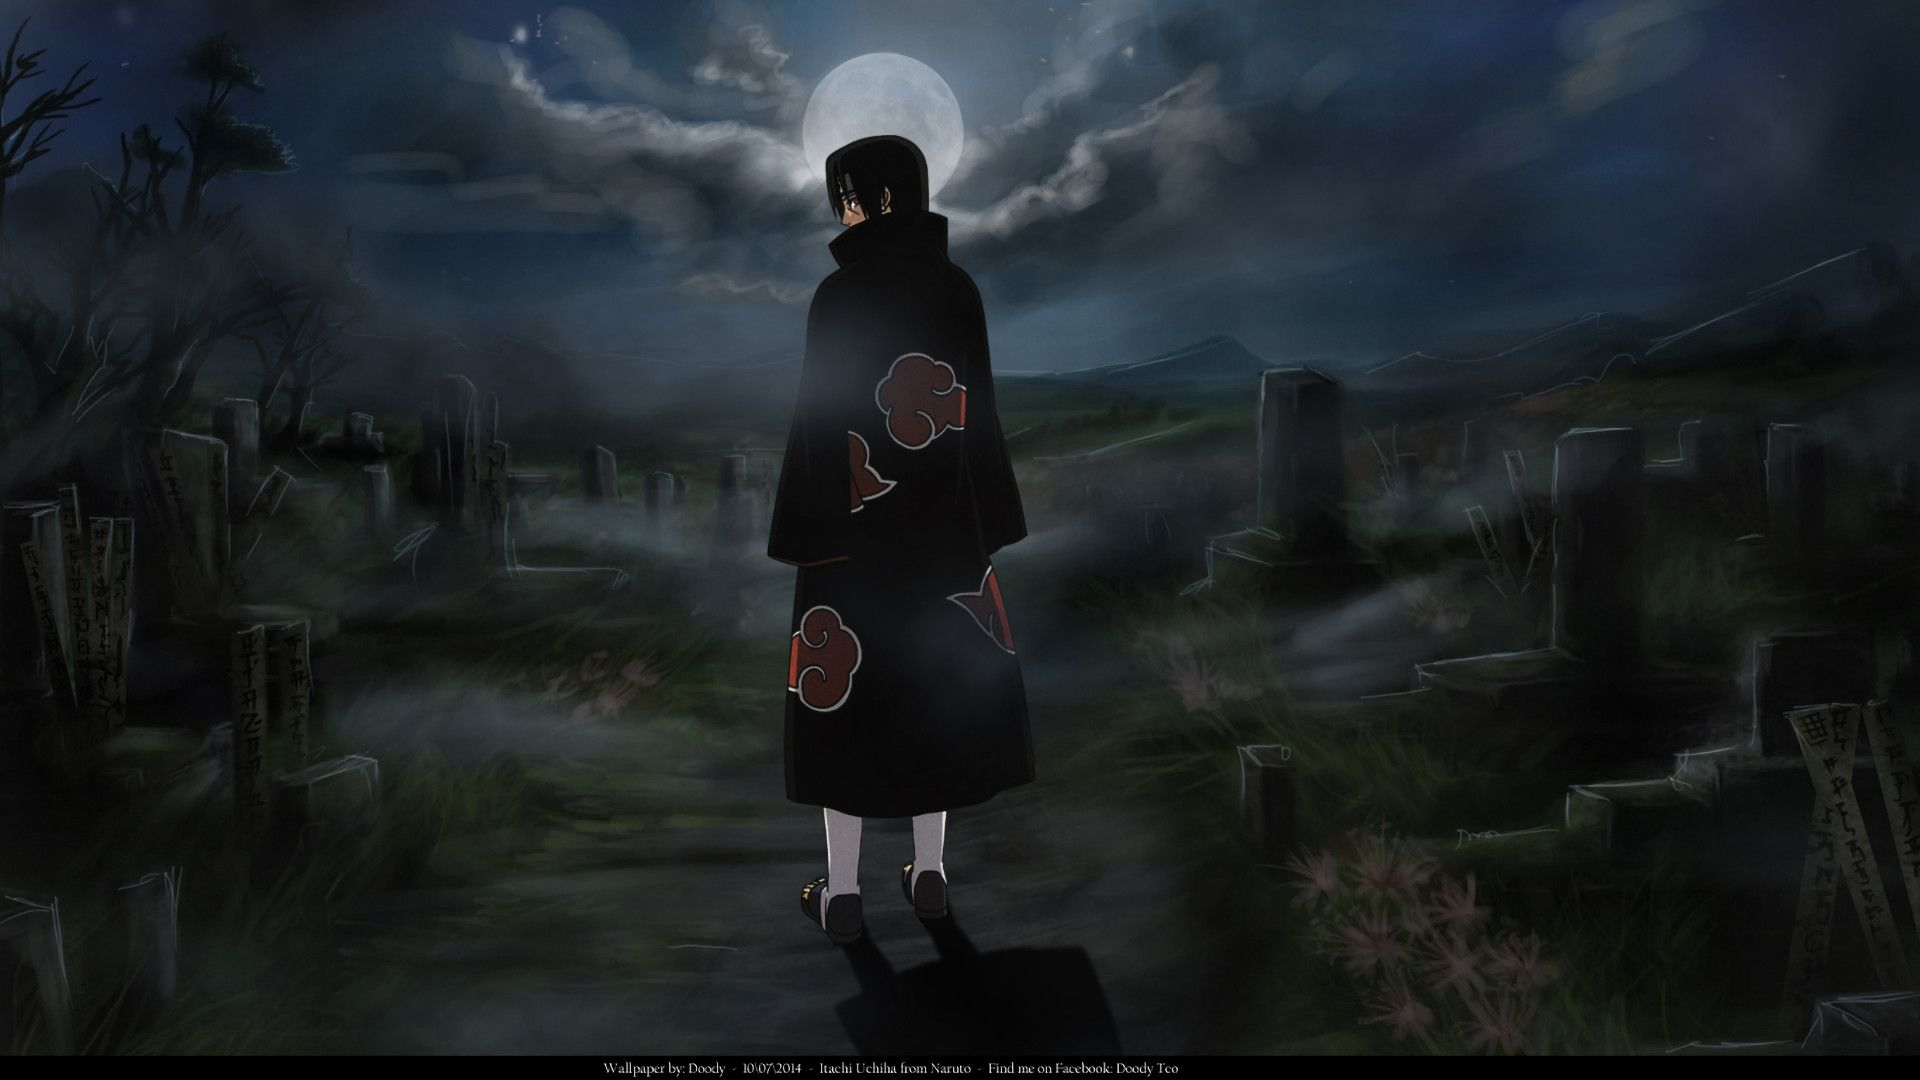 Anime Naruto Itachi Uchiha Wallpaper